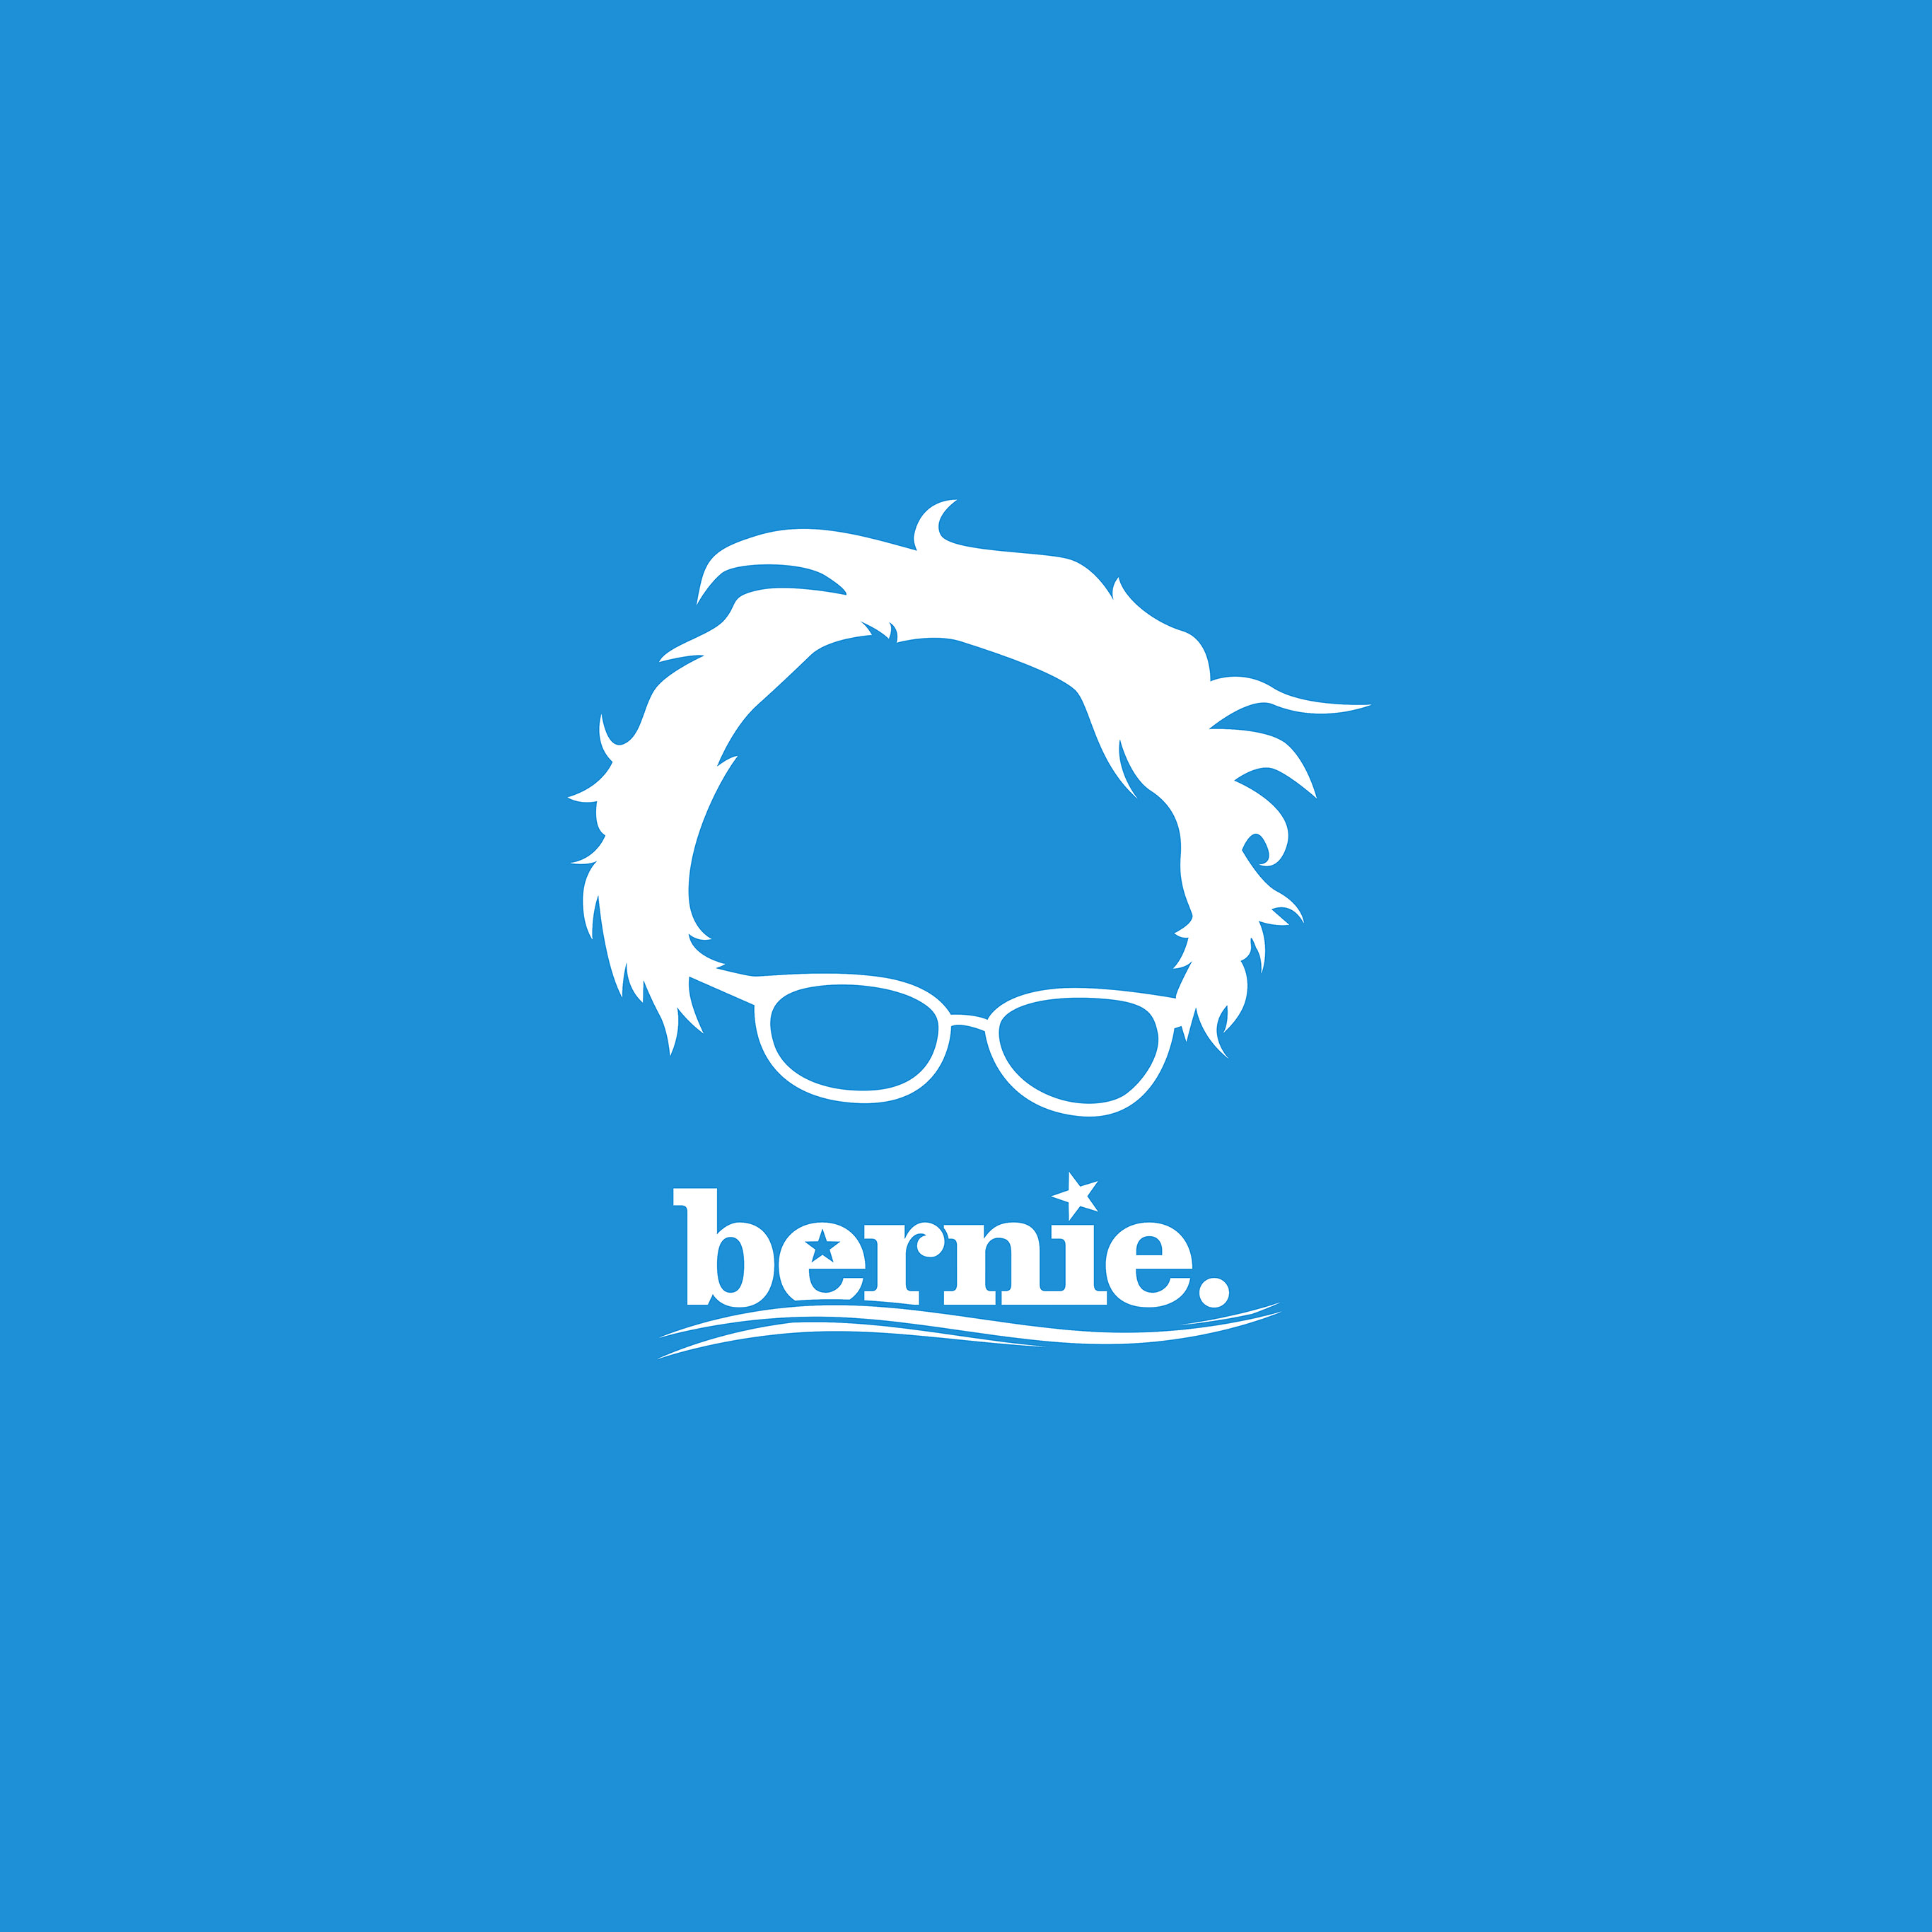 ap24-bernie-sanders-poster-blue-art-wallpaper